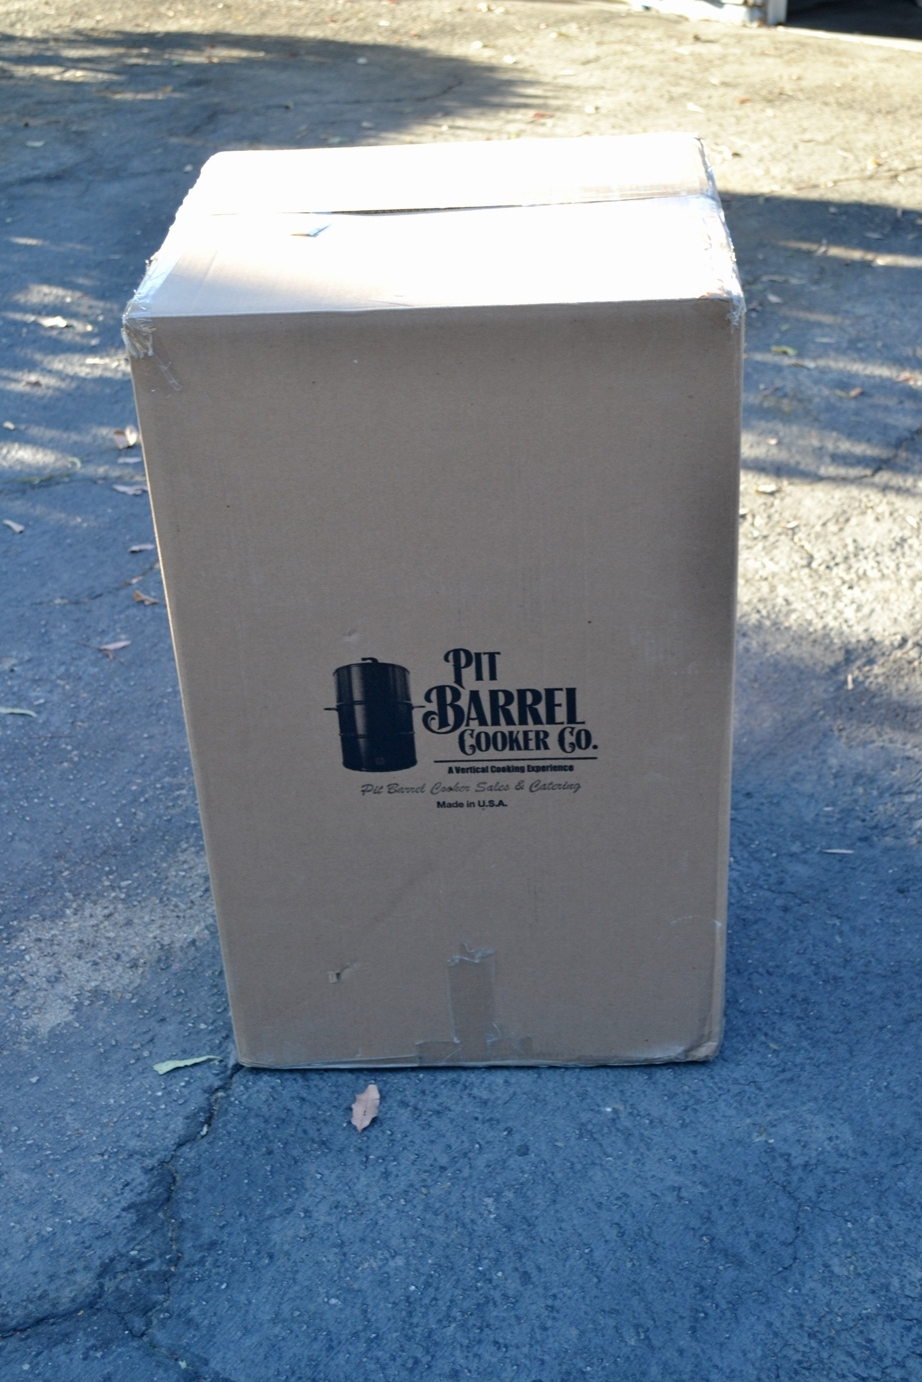 Pit Barrel Cooker in Box.jpg